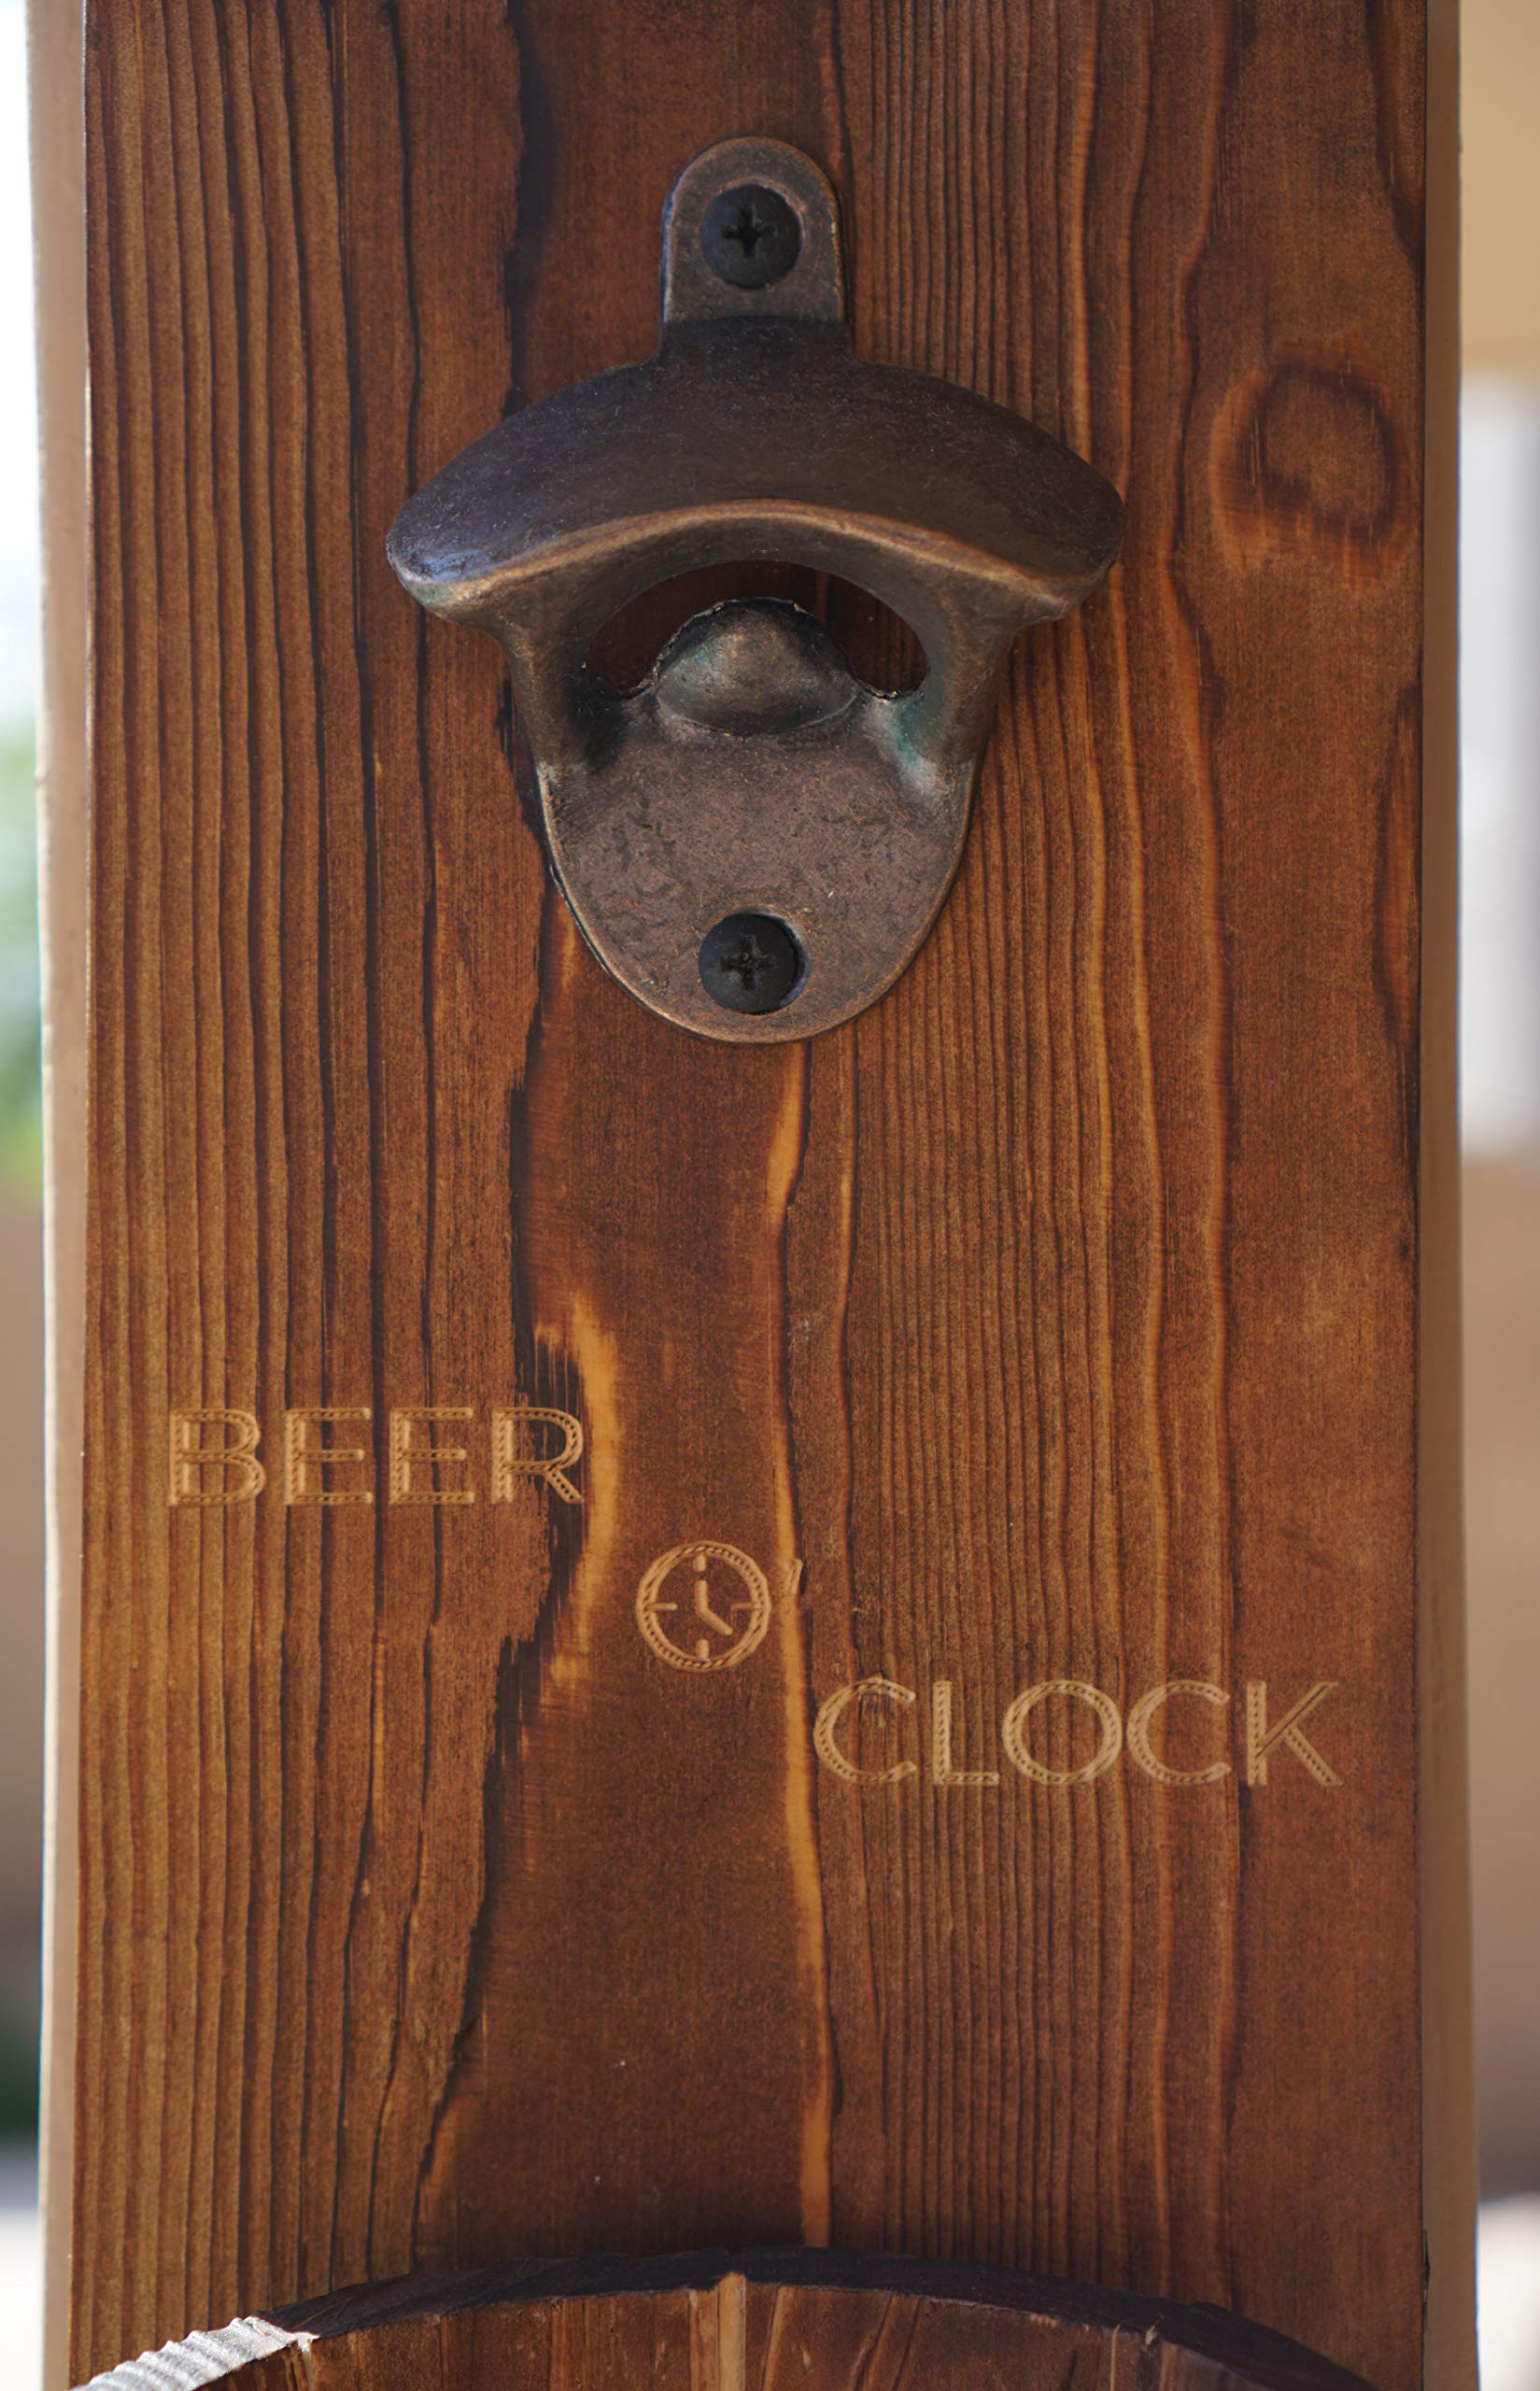 Thirsty Solutions - ''Beer O' Clock'' Rustic Wall Mounted Bottle Opener and Catcher - Dark Stain Pine with Zinc Alloy Opener - Removable Wooden Bucket - Man (or Woman) Cave Ready by Thirsty Solutions (Image #5)